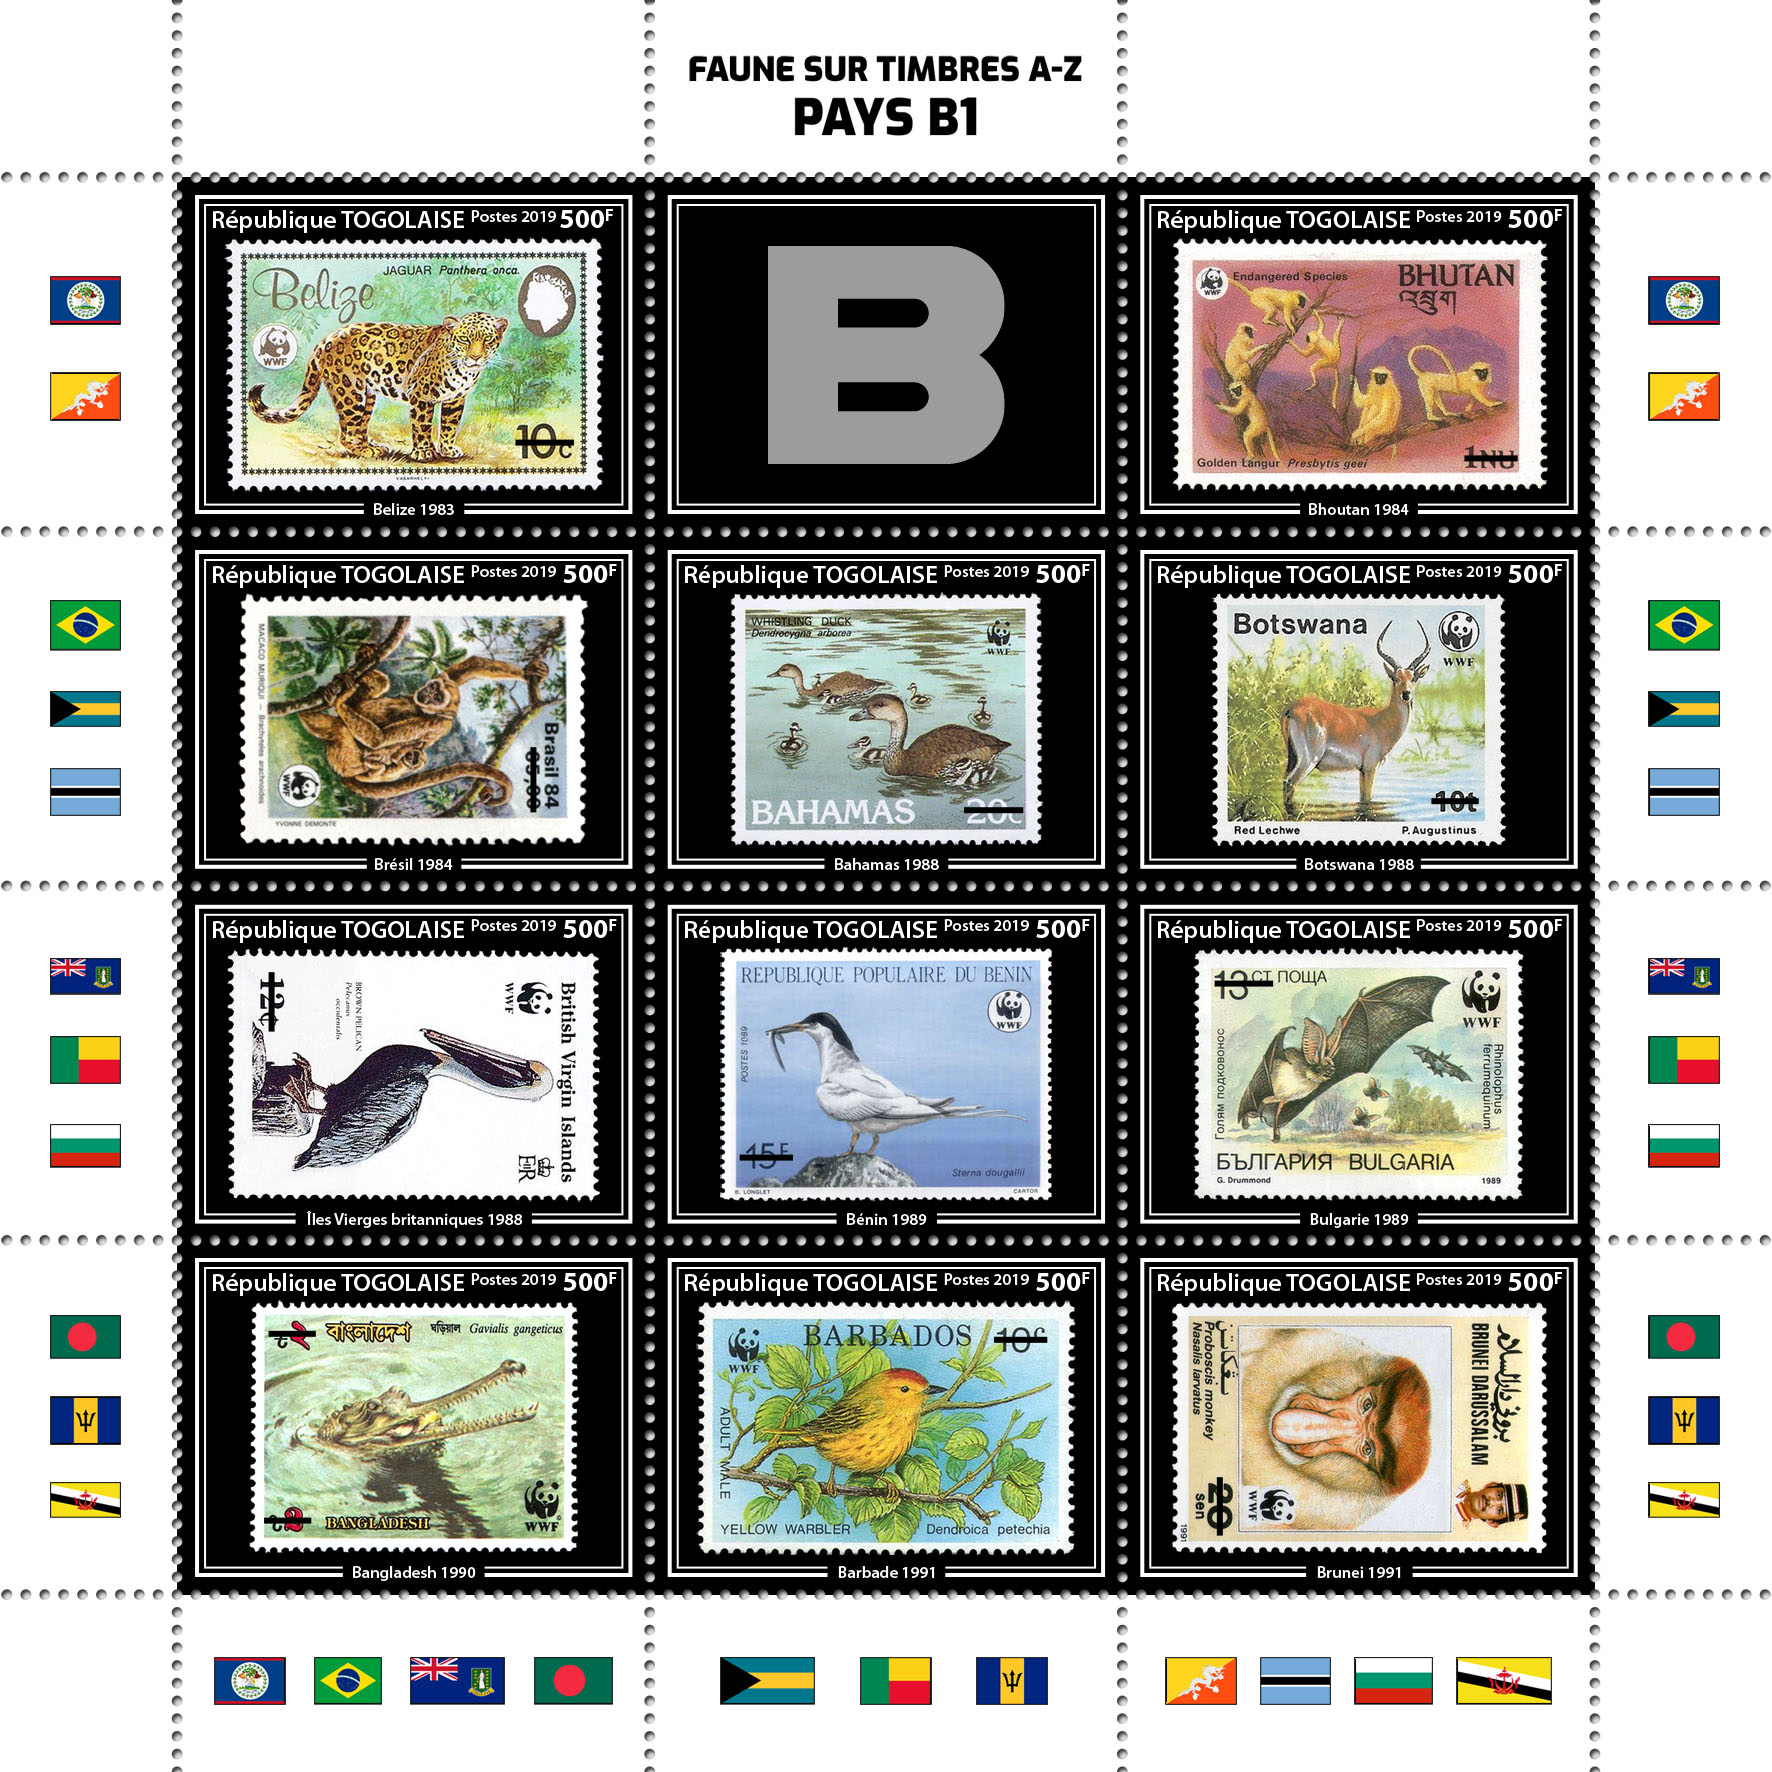 Stamps on stamps 11v – 01 - Issue of Togo postage stamps